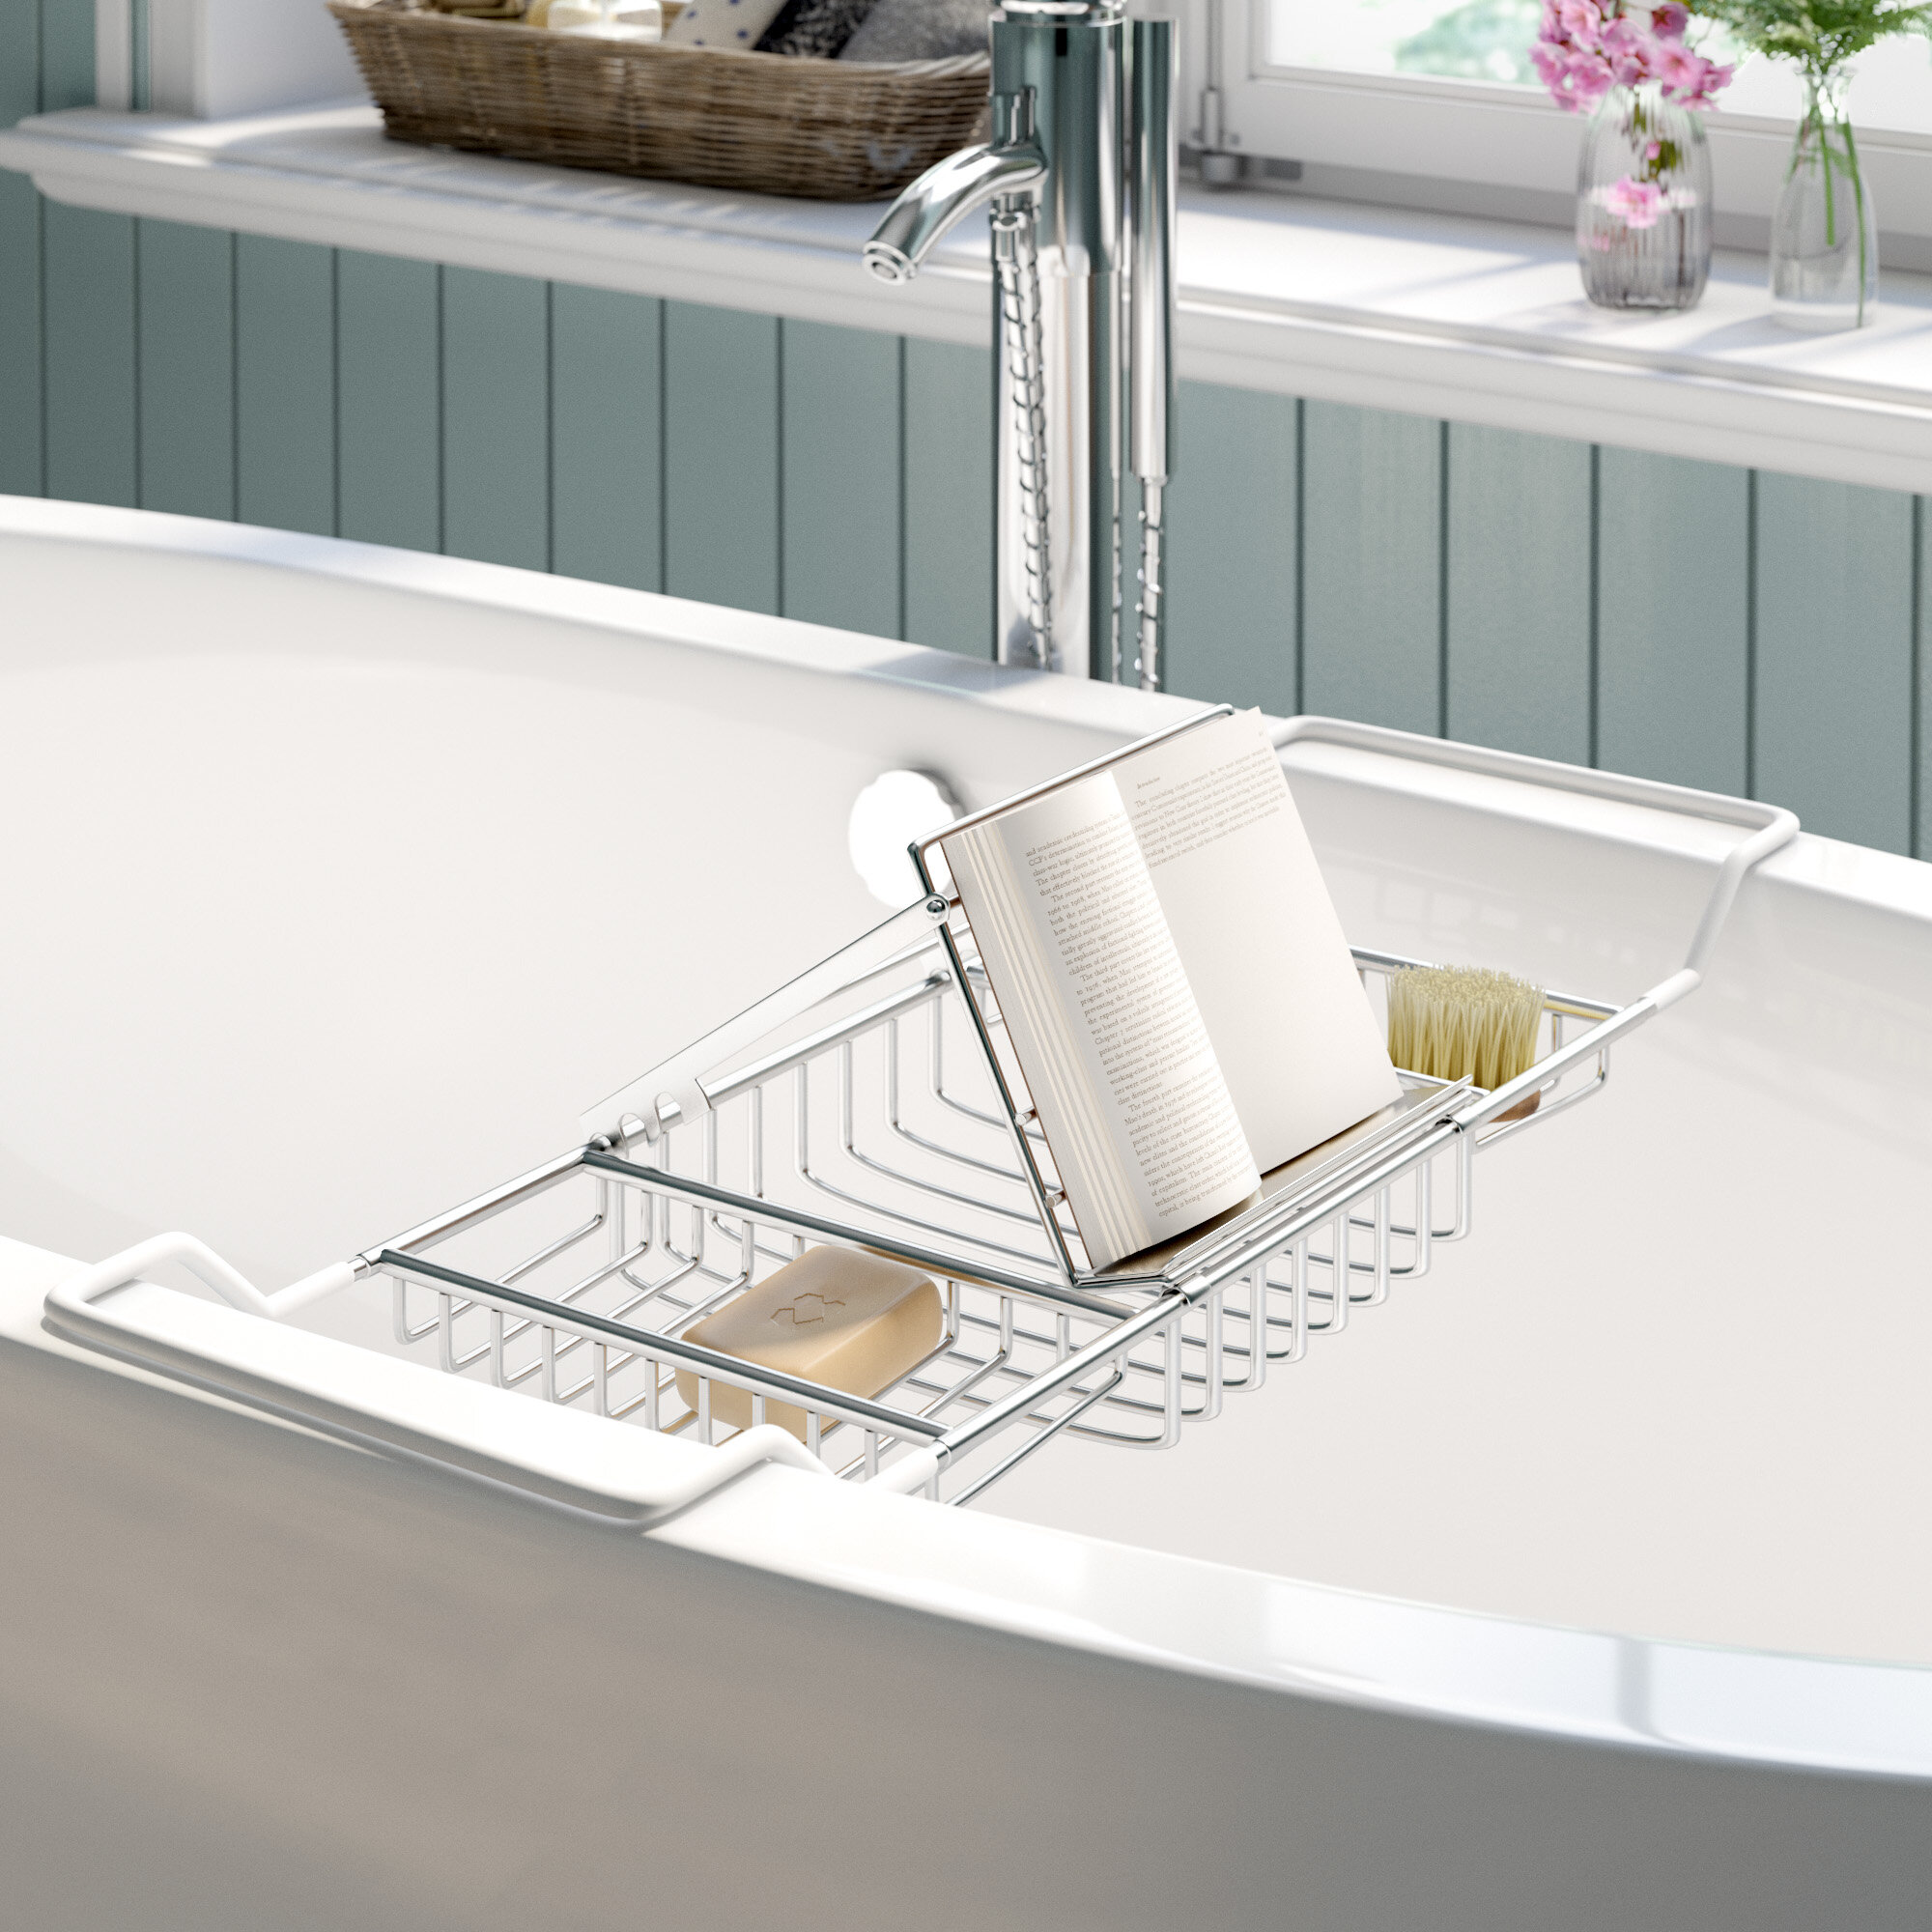 The Twillery Co. Ely Reading Rack Bath Caddy & Reviews | Wayfair